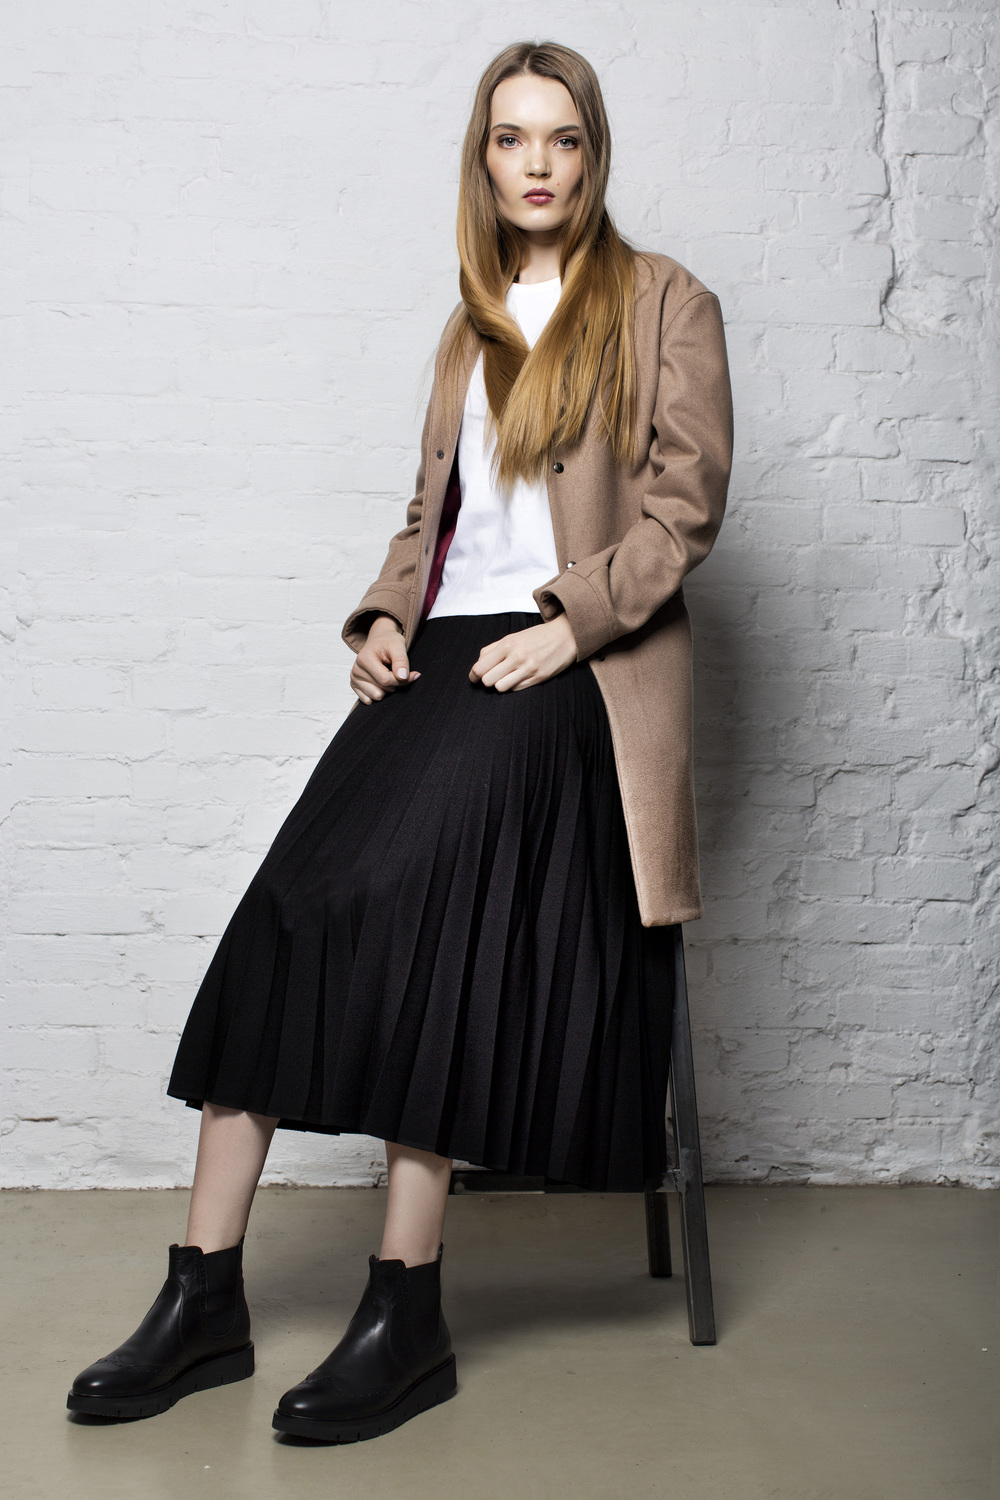 coat KEYCE, t-shirt CHRISTIAN BERG, skirt PLISSIMA, shoes DEICHMANN